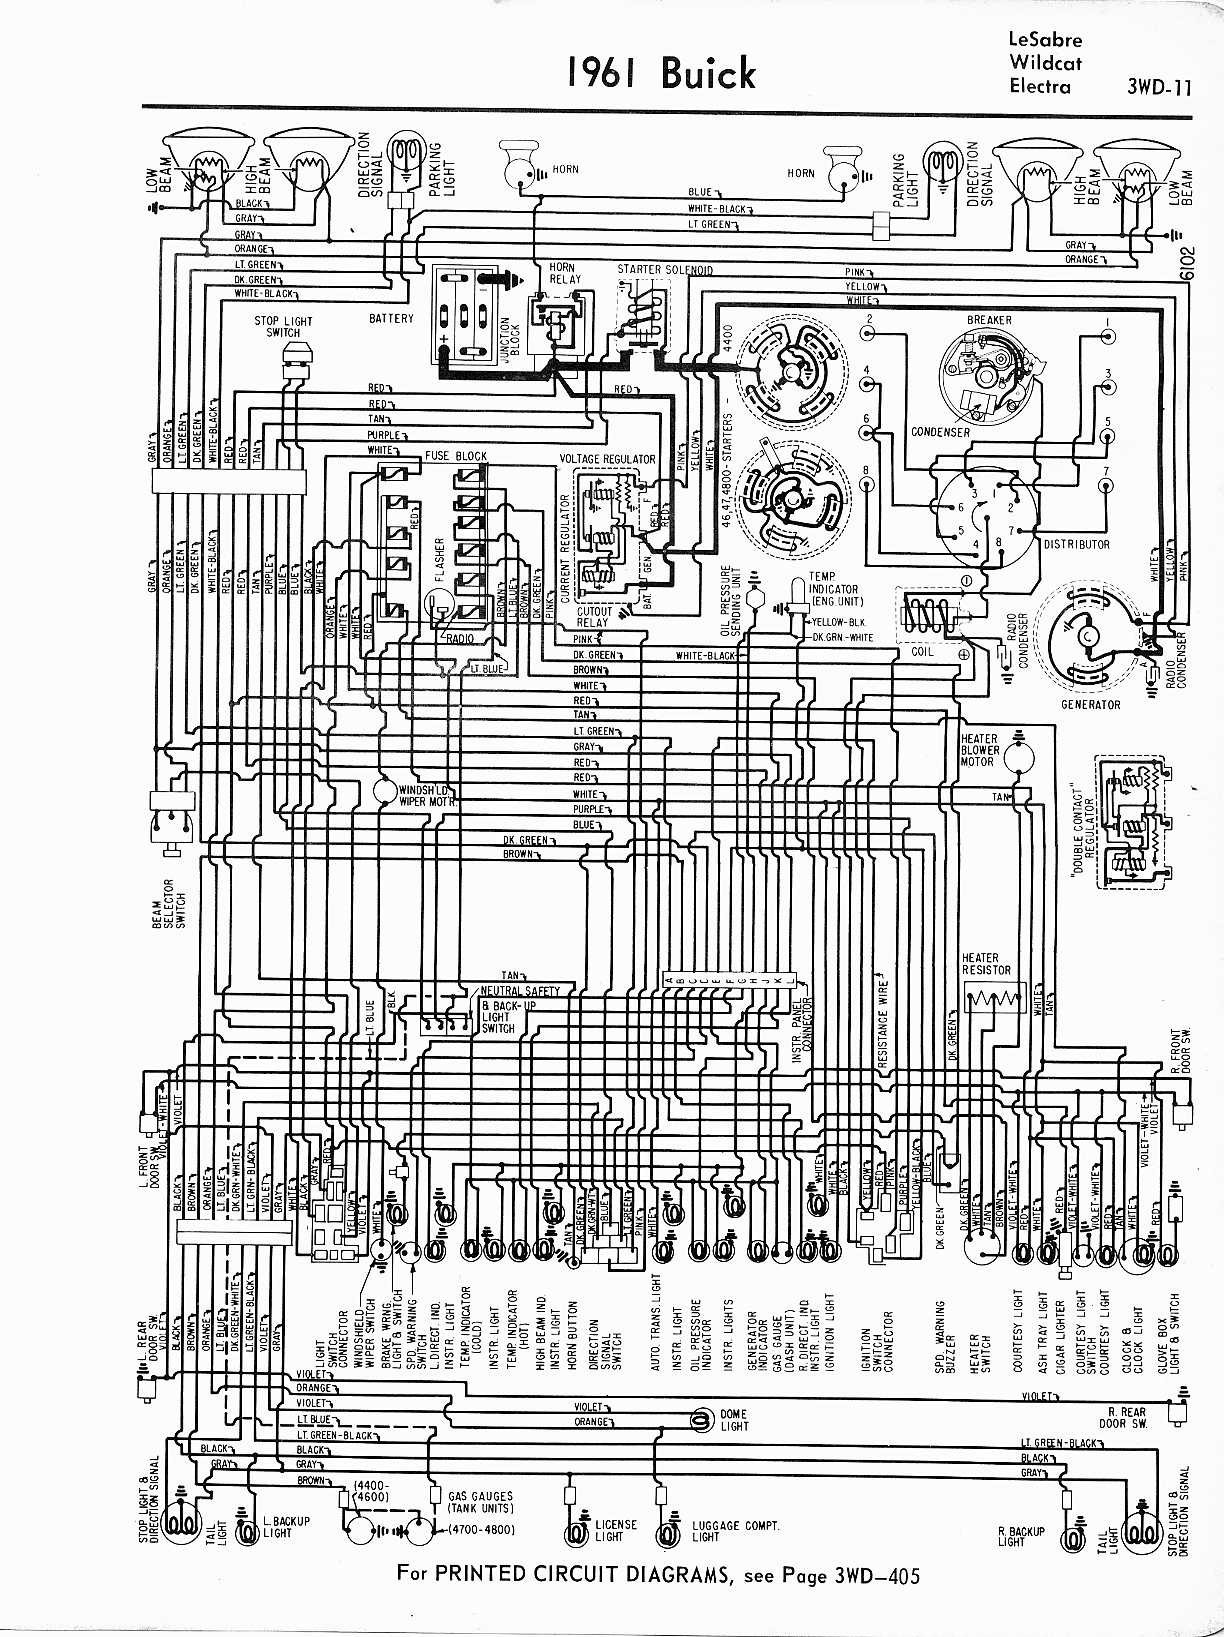 Wiring Diagram For 2012 Buick Enclave. . Wiring Diagram on